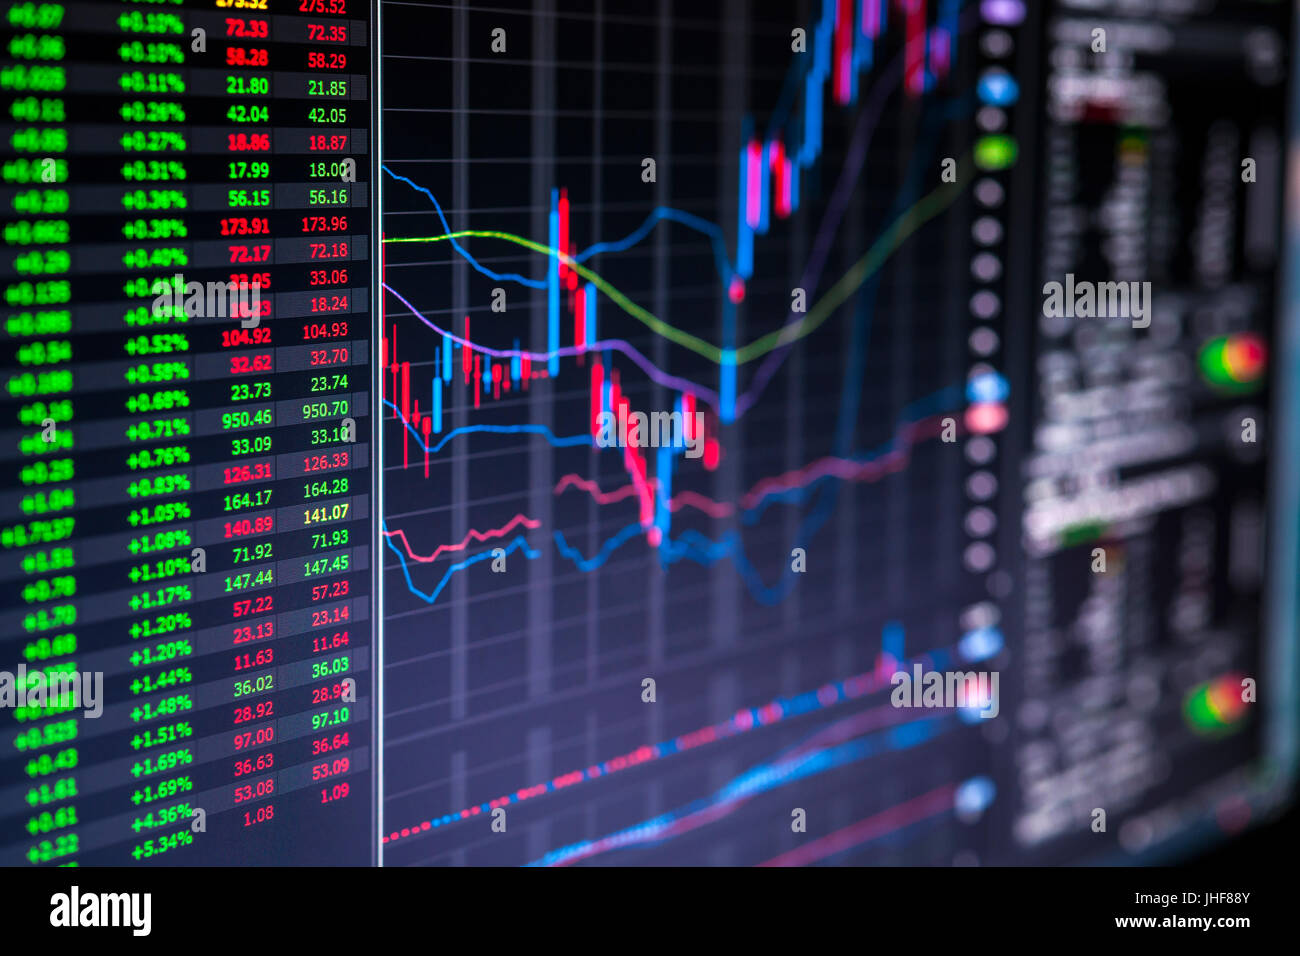 stock market charts and numbers displayed on trading screen of